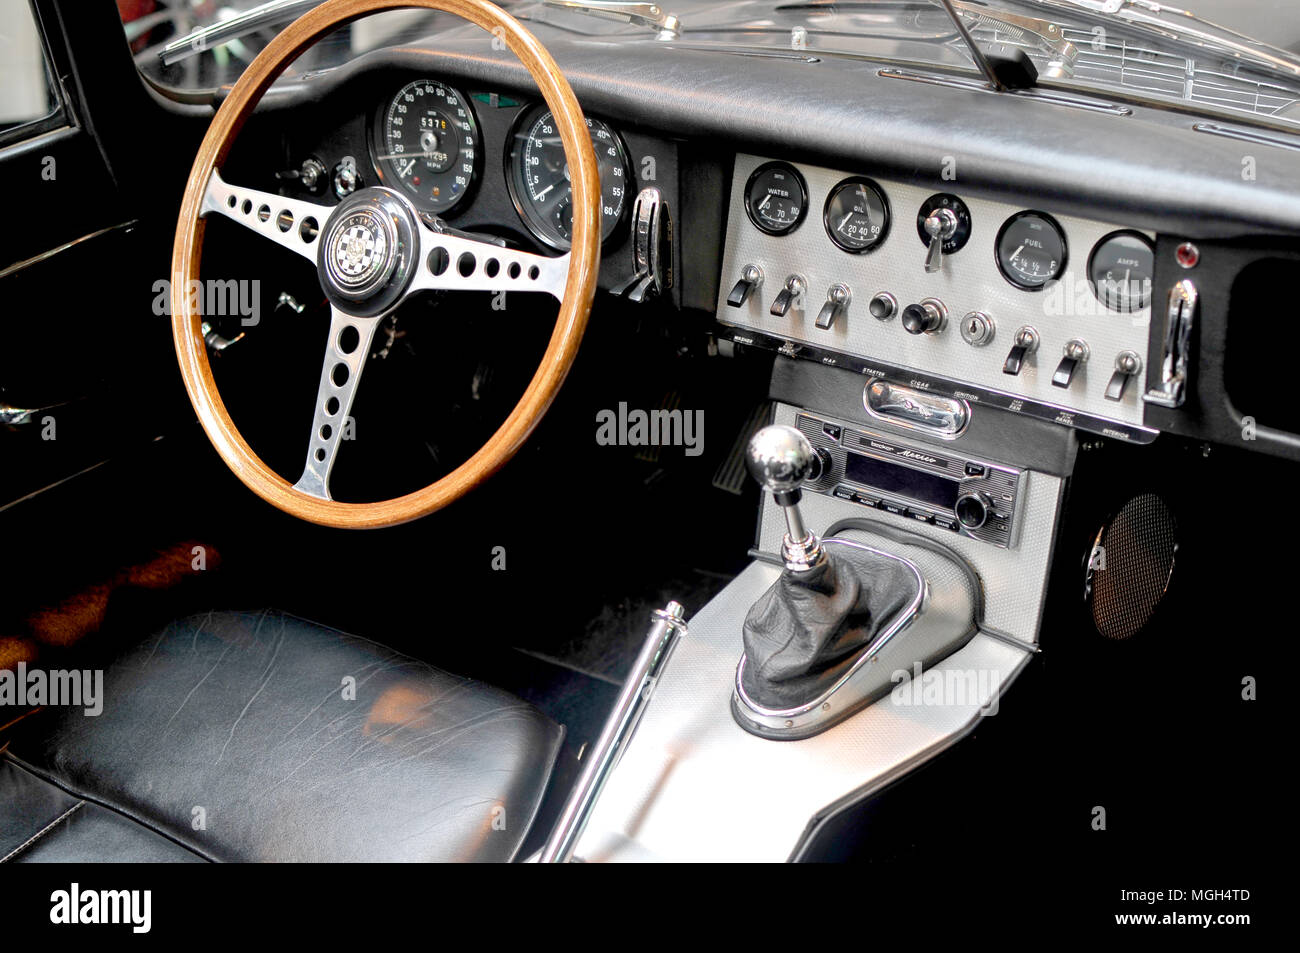 Jaguar Type E Dashboard- Tableau de bord de la Jaguar Type E - Stock Image